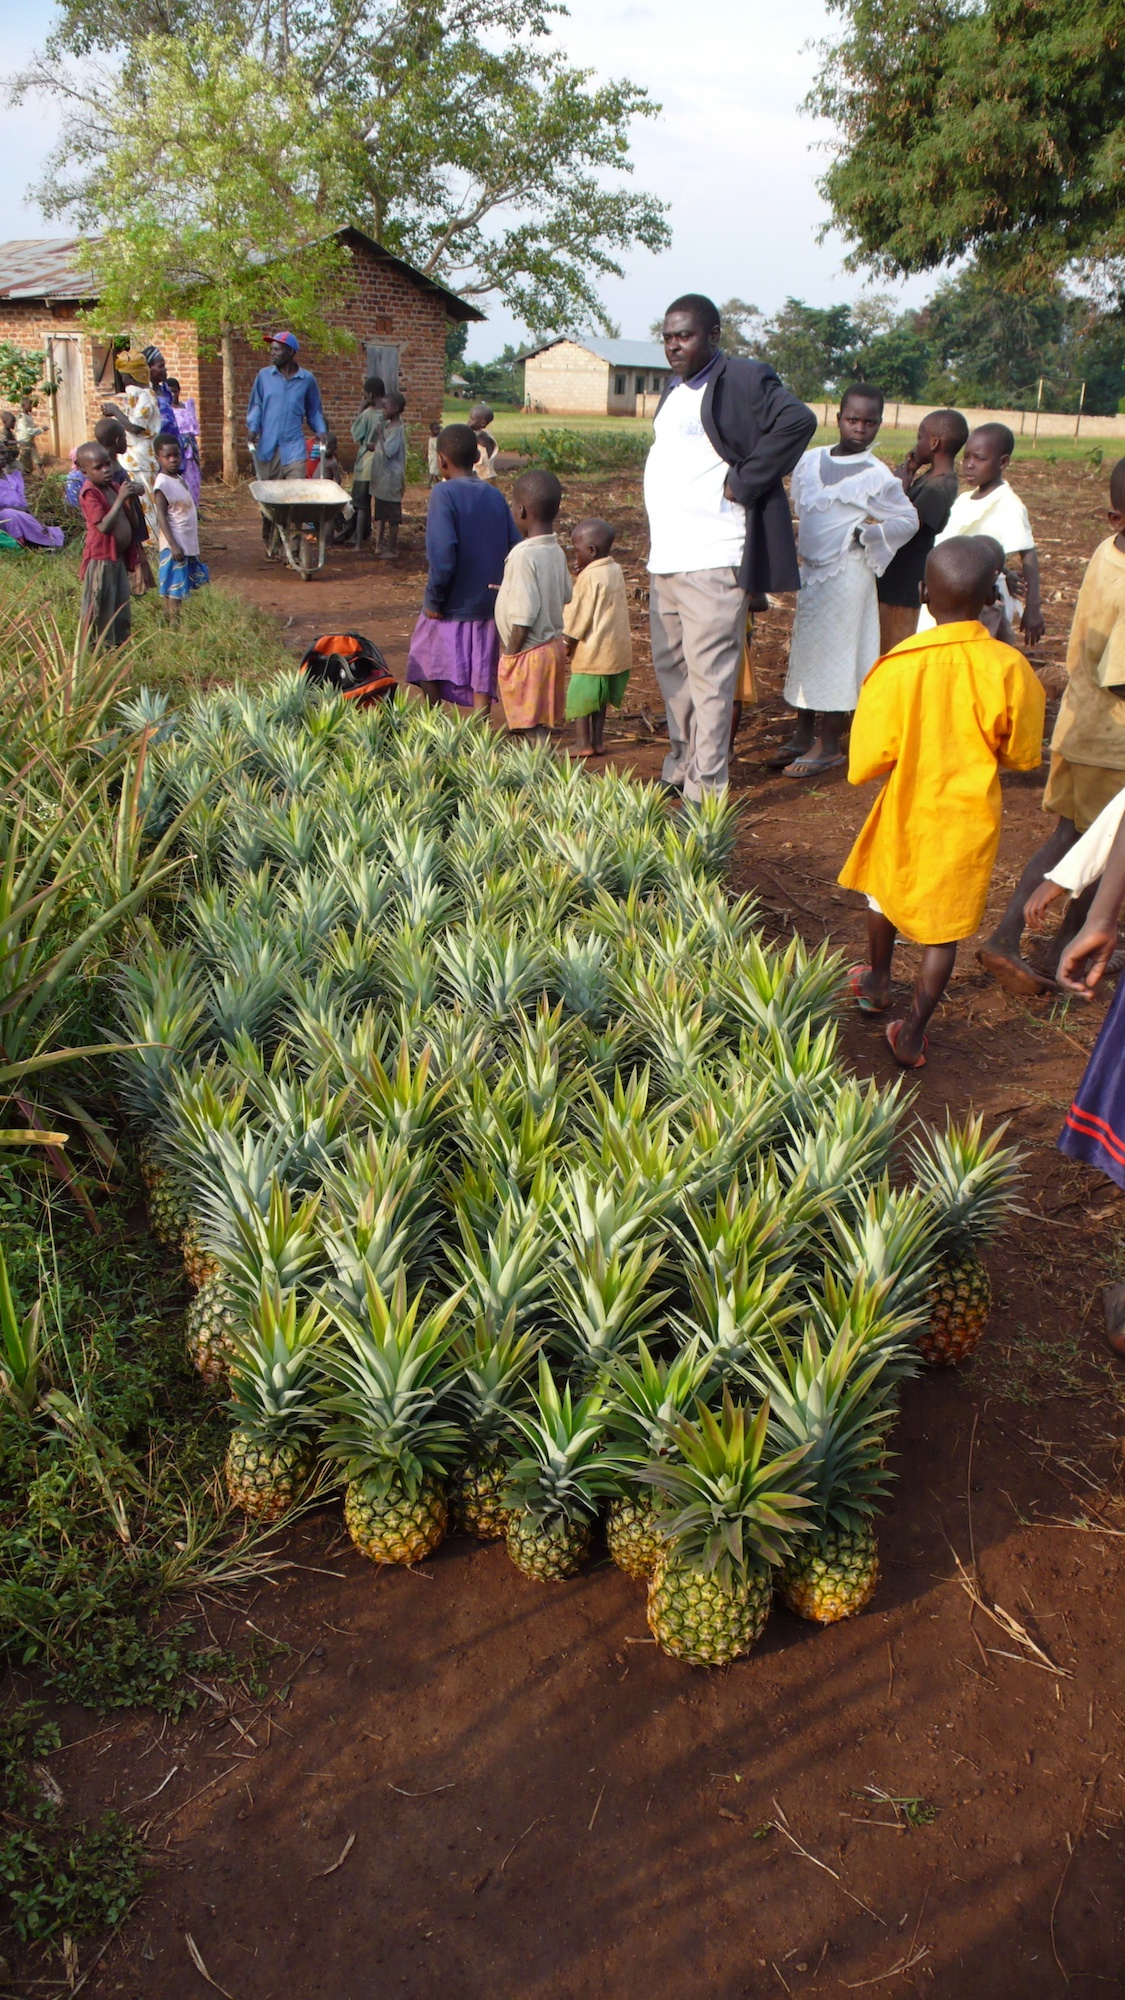 Group of people in front of harvested pineapples